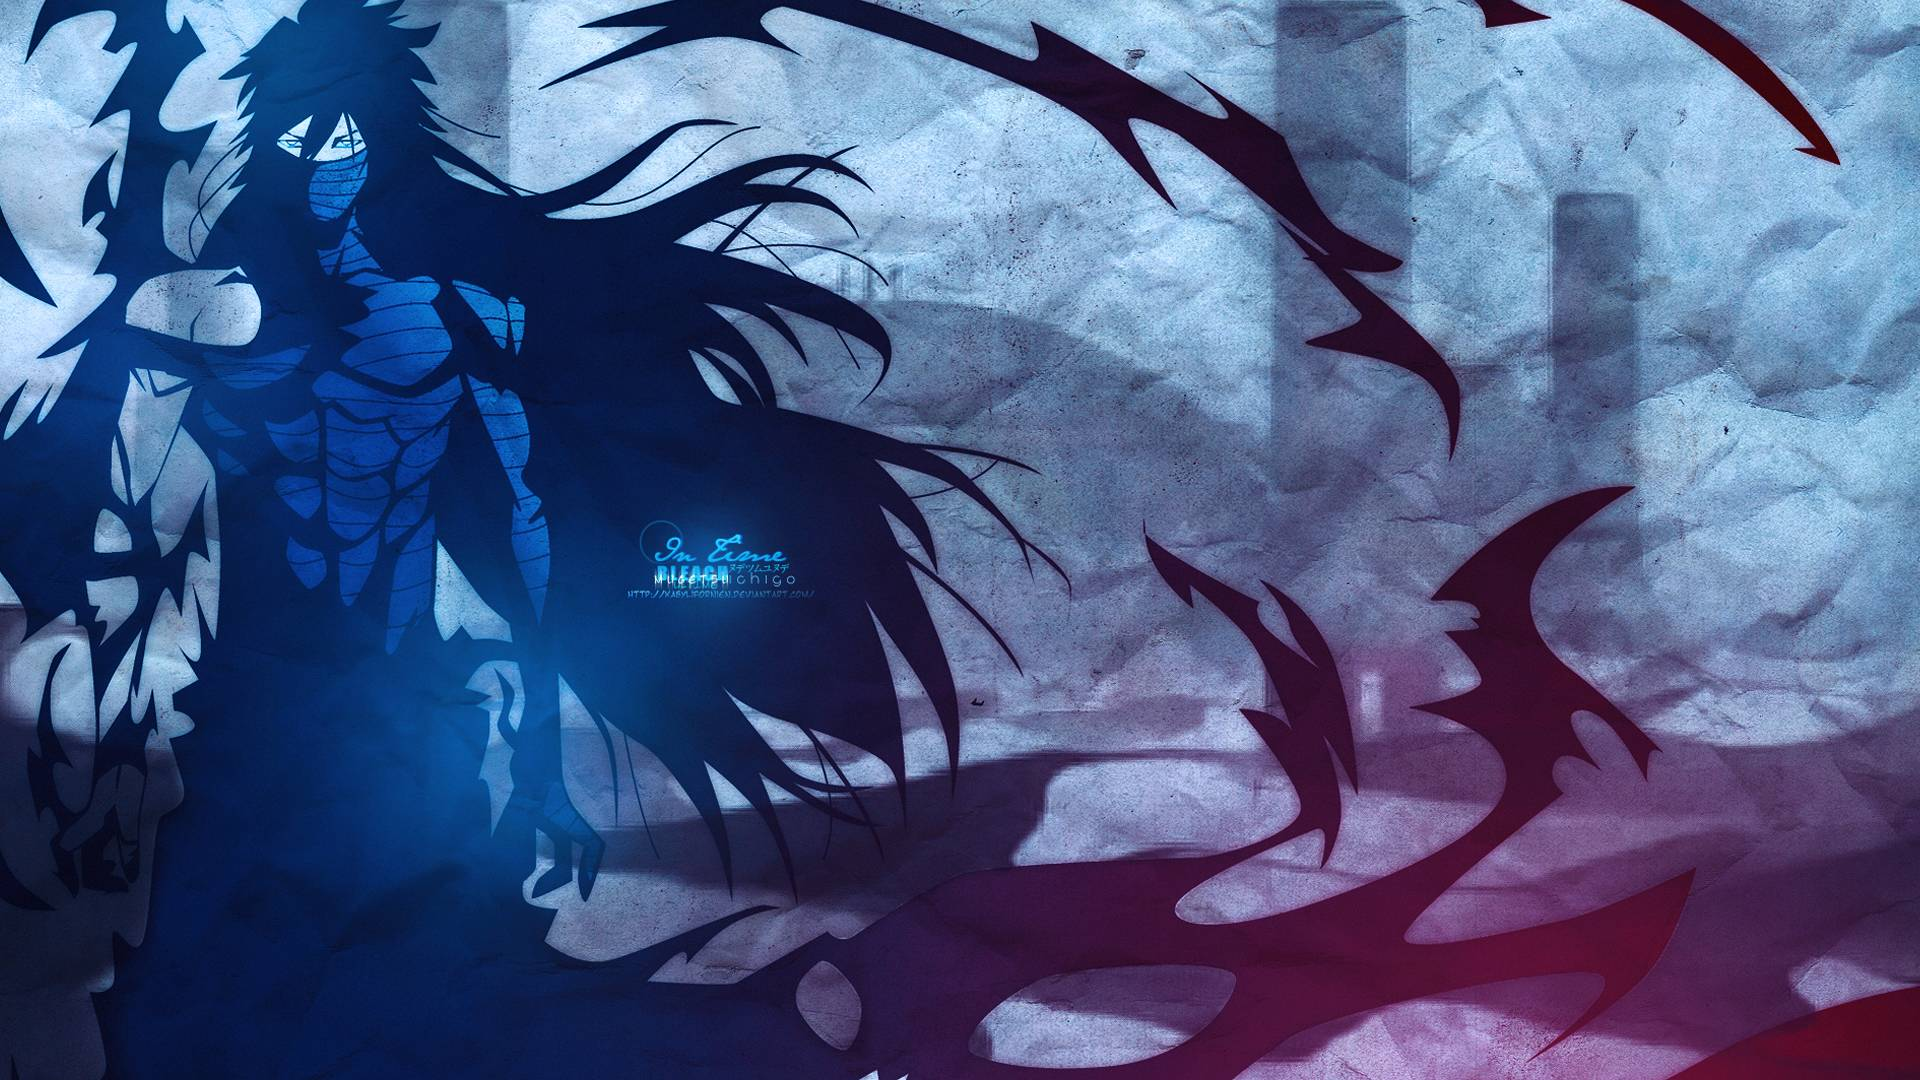 bleach wallpaper 1920 x 1080 - photo #8